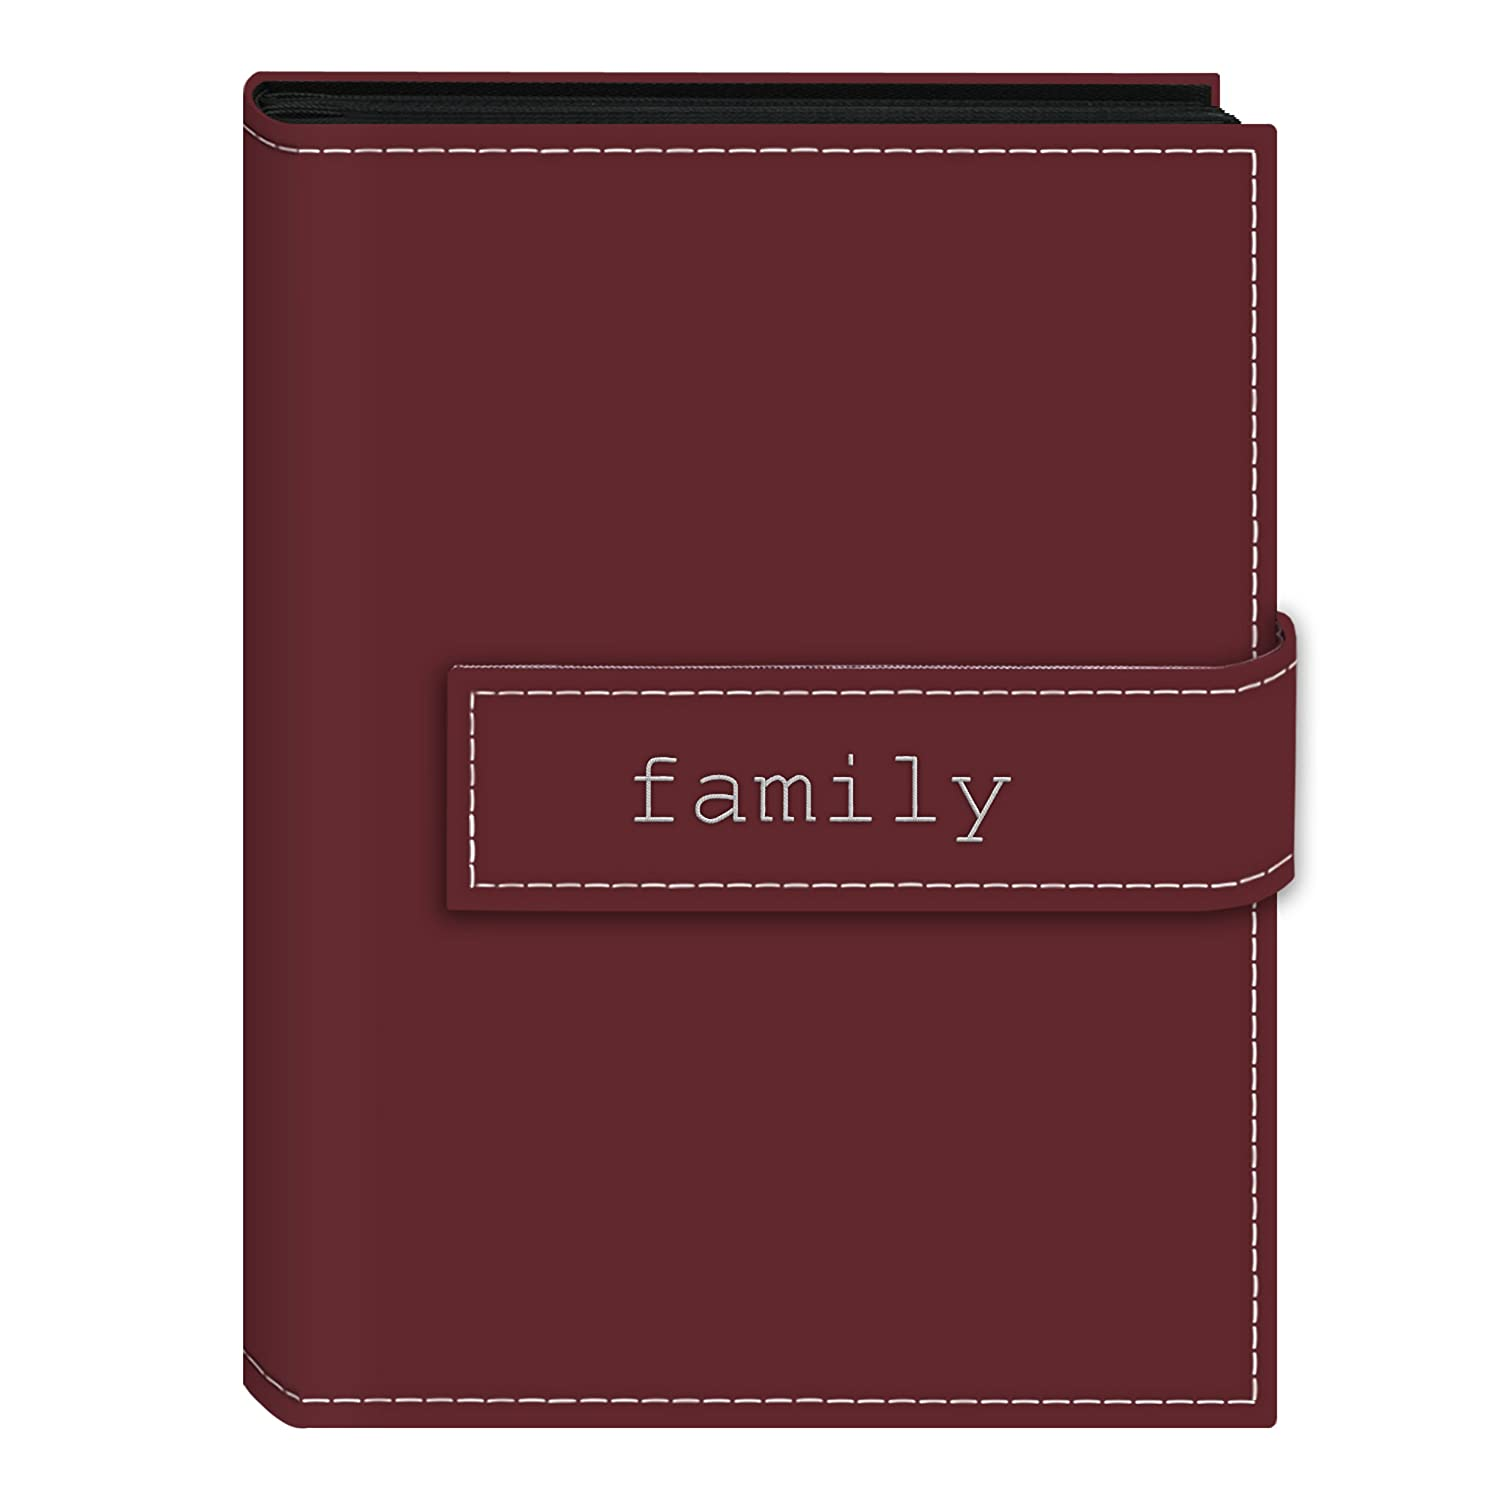 Pioneer Photo Albums 36-Pocket 5 by 7-Inch EmbroideredFamily Strap Sewn Leatherette Cover Photo Album, Mini, Burgundy EXP-57/BF